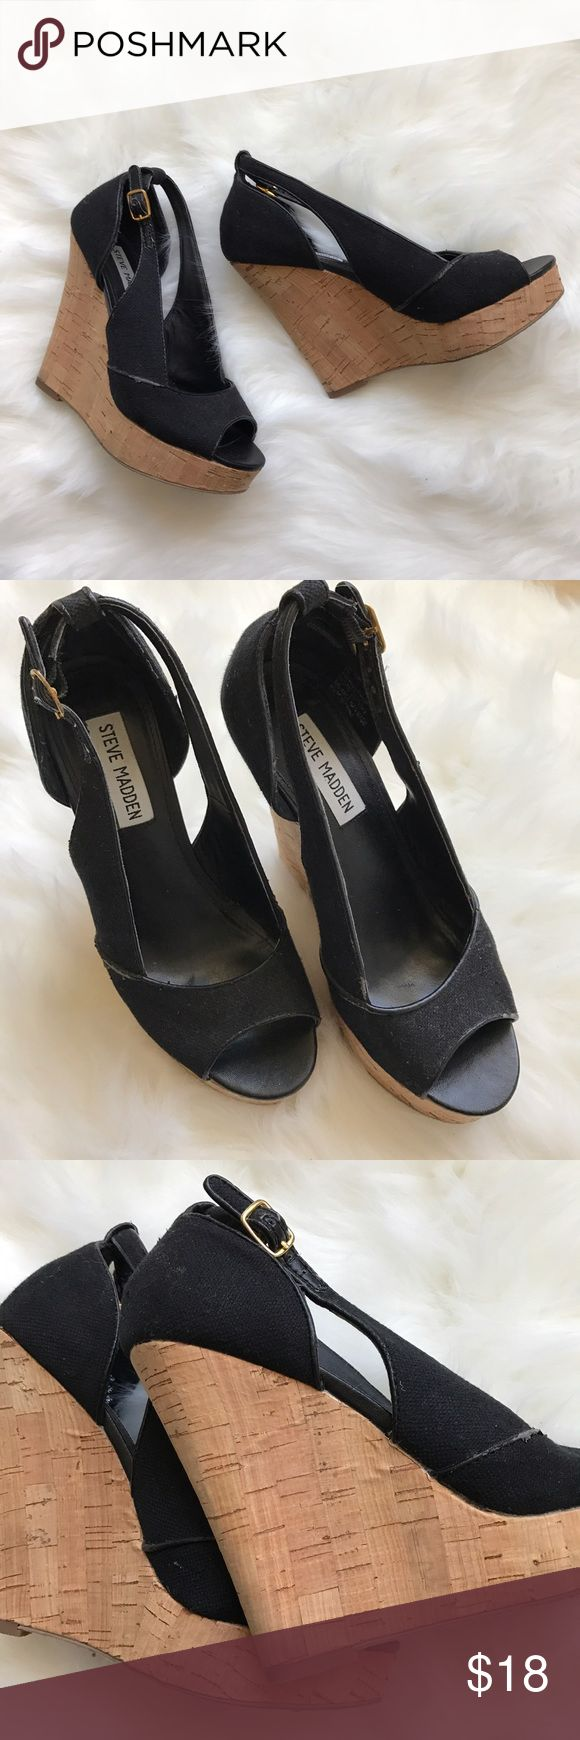 """Steve Madden Taytum Blk Espadrille Peep Toe Wedges Steve Madden. Style: Taytum. Size: 6M. Black canvas fabric. Peep toe with sling back gold buckle. 1"""" toe lift and 5"""" wedge. Originally $70. Well worn with normal scuff damage to outer shoe as pictured. Shoes still have a lot of life! Will take best offer. No box. Steve Madden Shoes Wedges"""